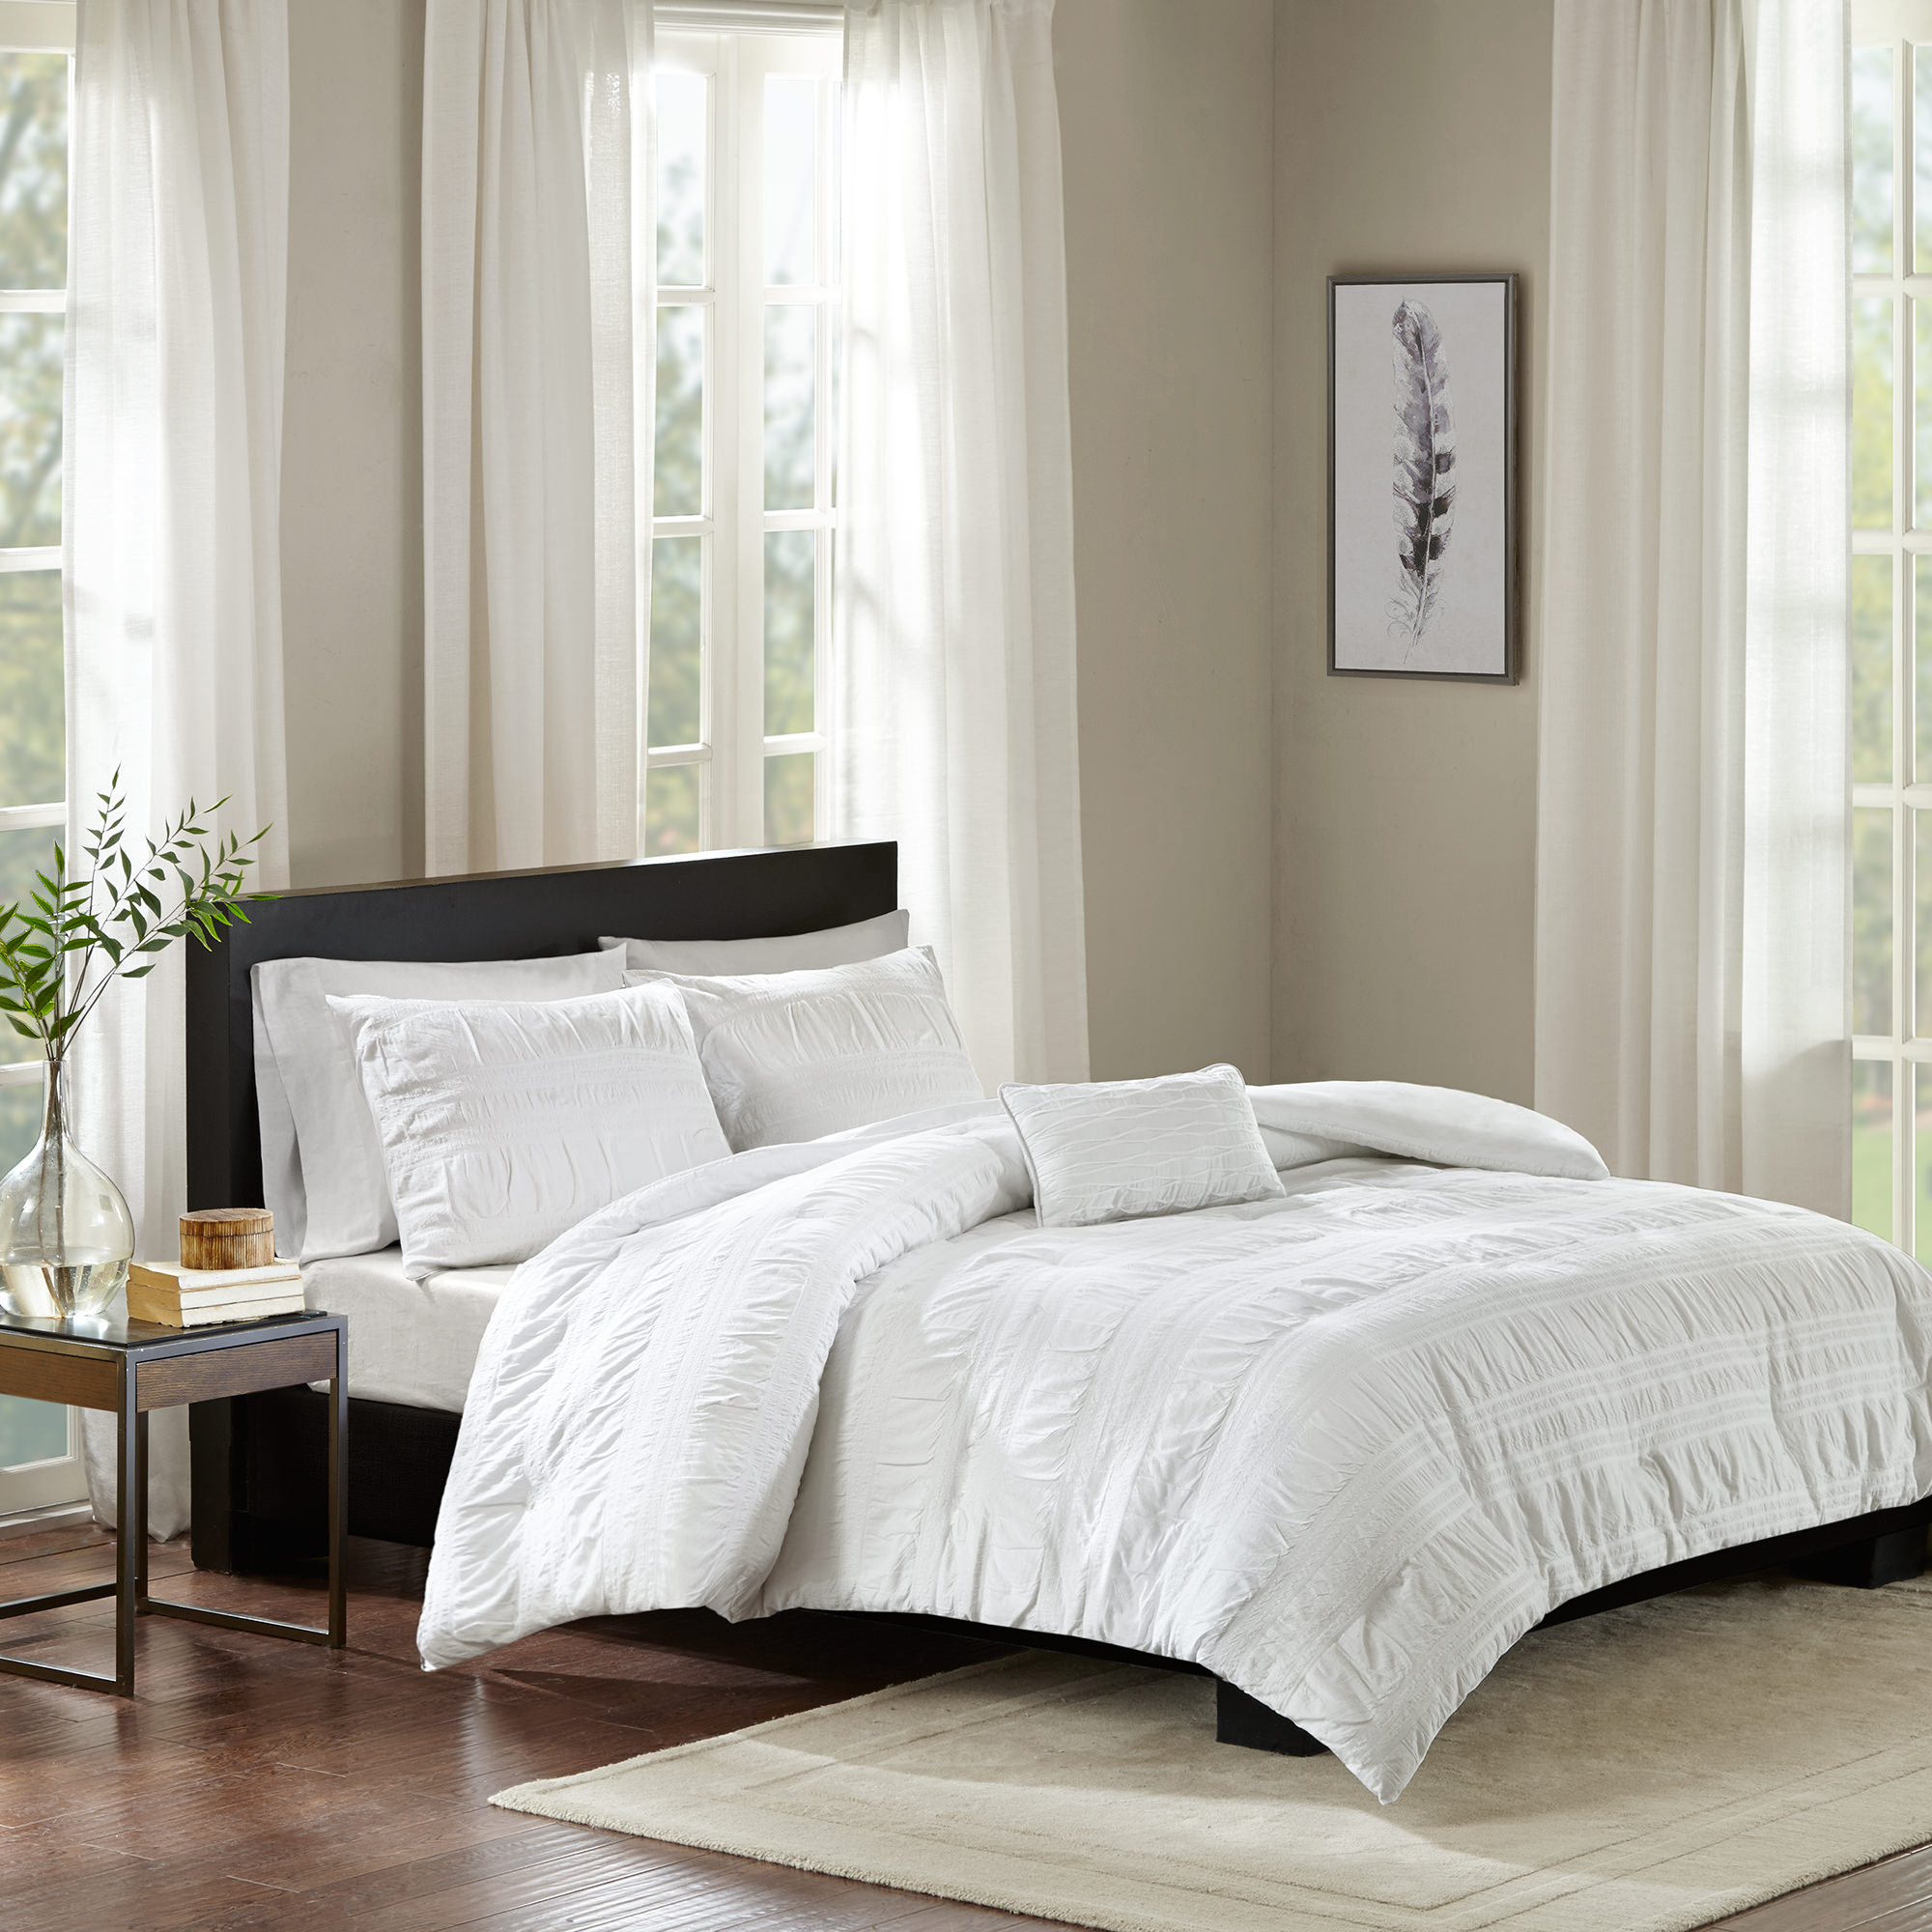 Home Essence Amari 4 Piece Cotton Seersucker Duvet Cover Set